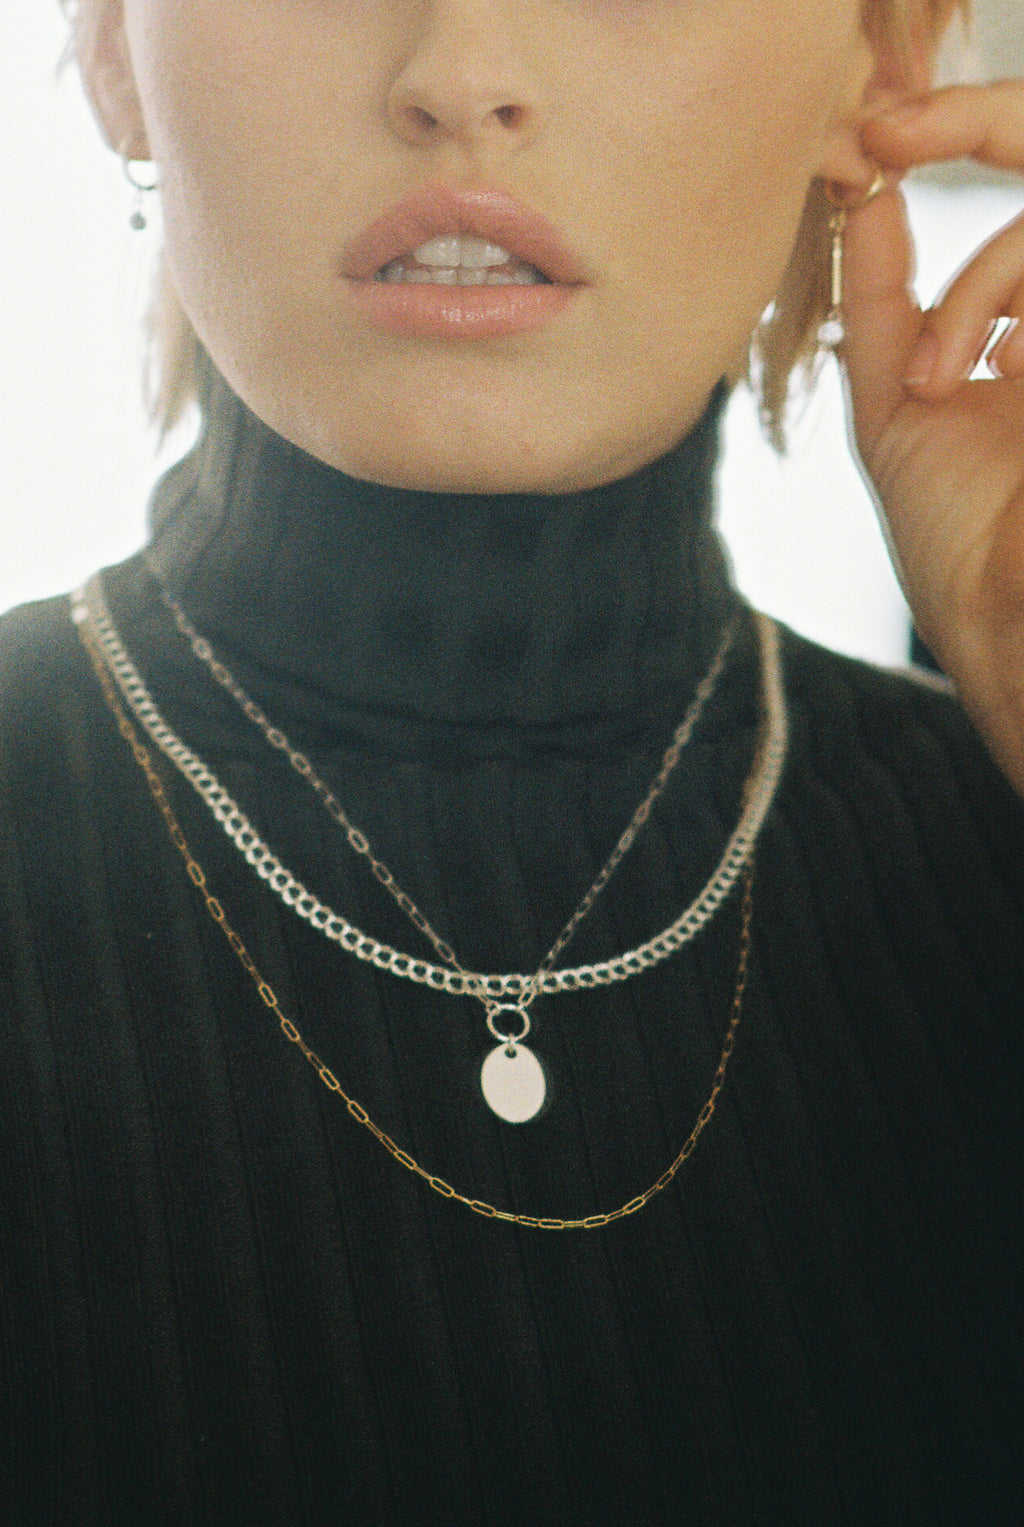 Glades Chain Necklace